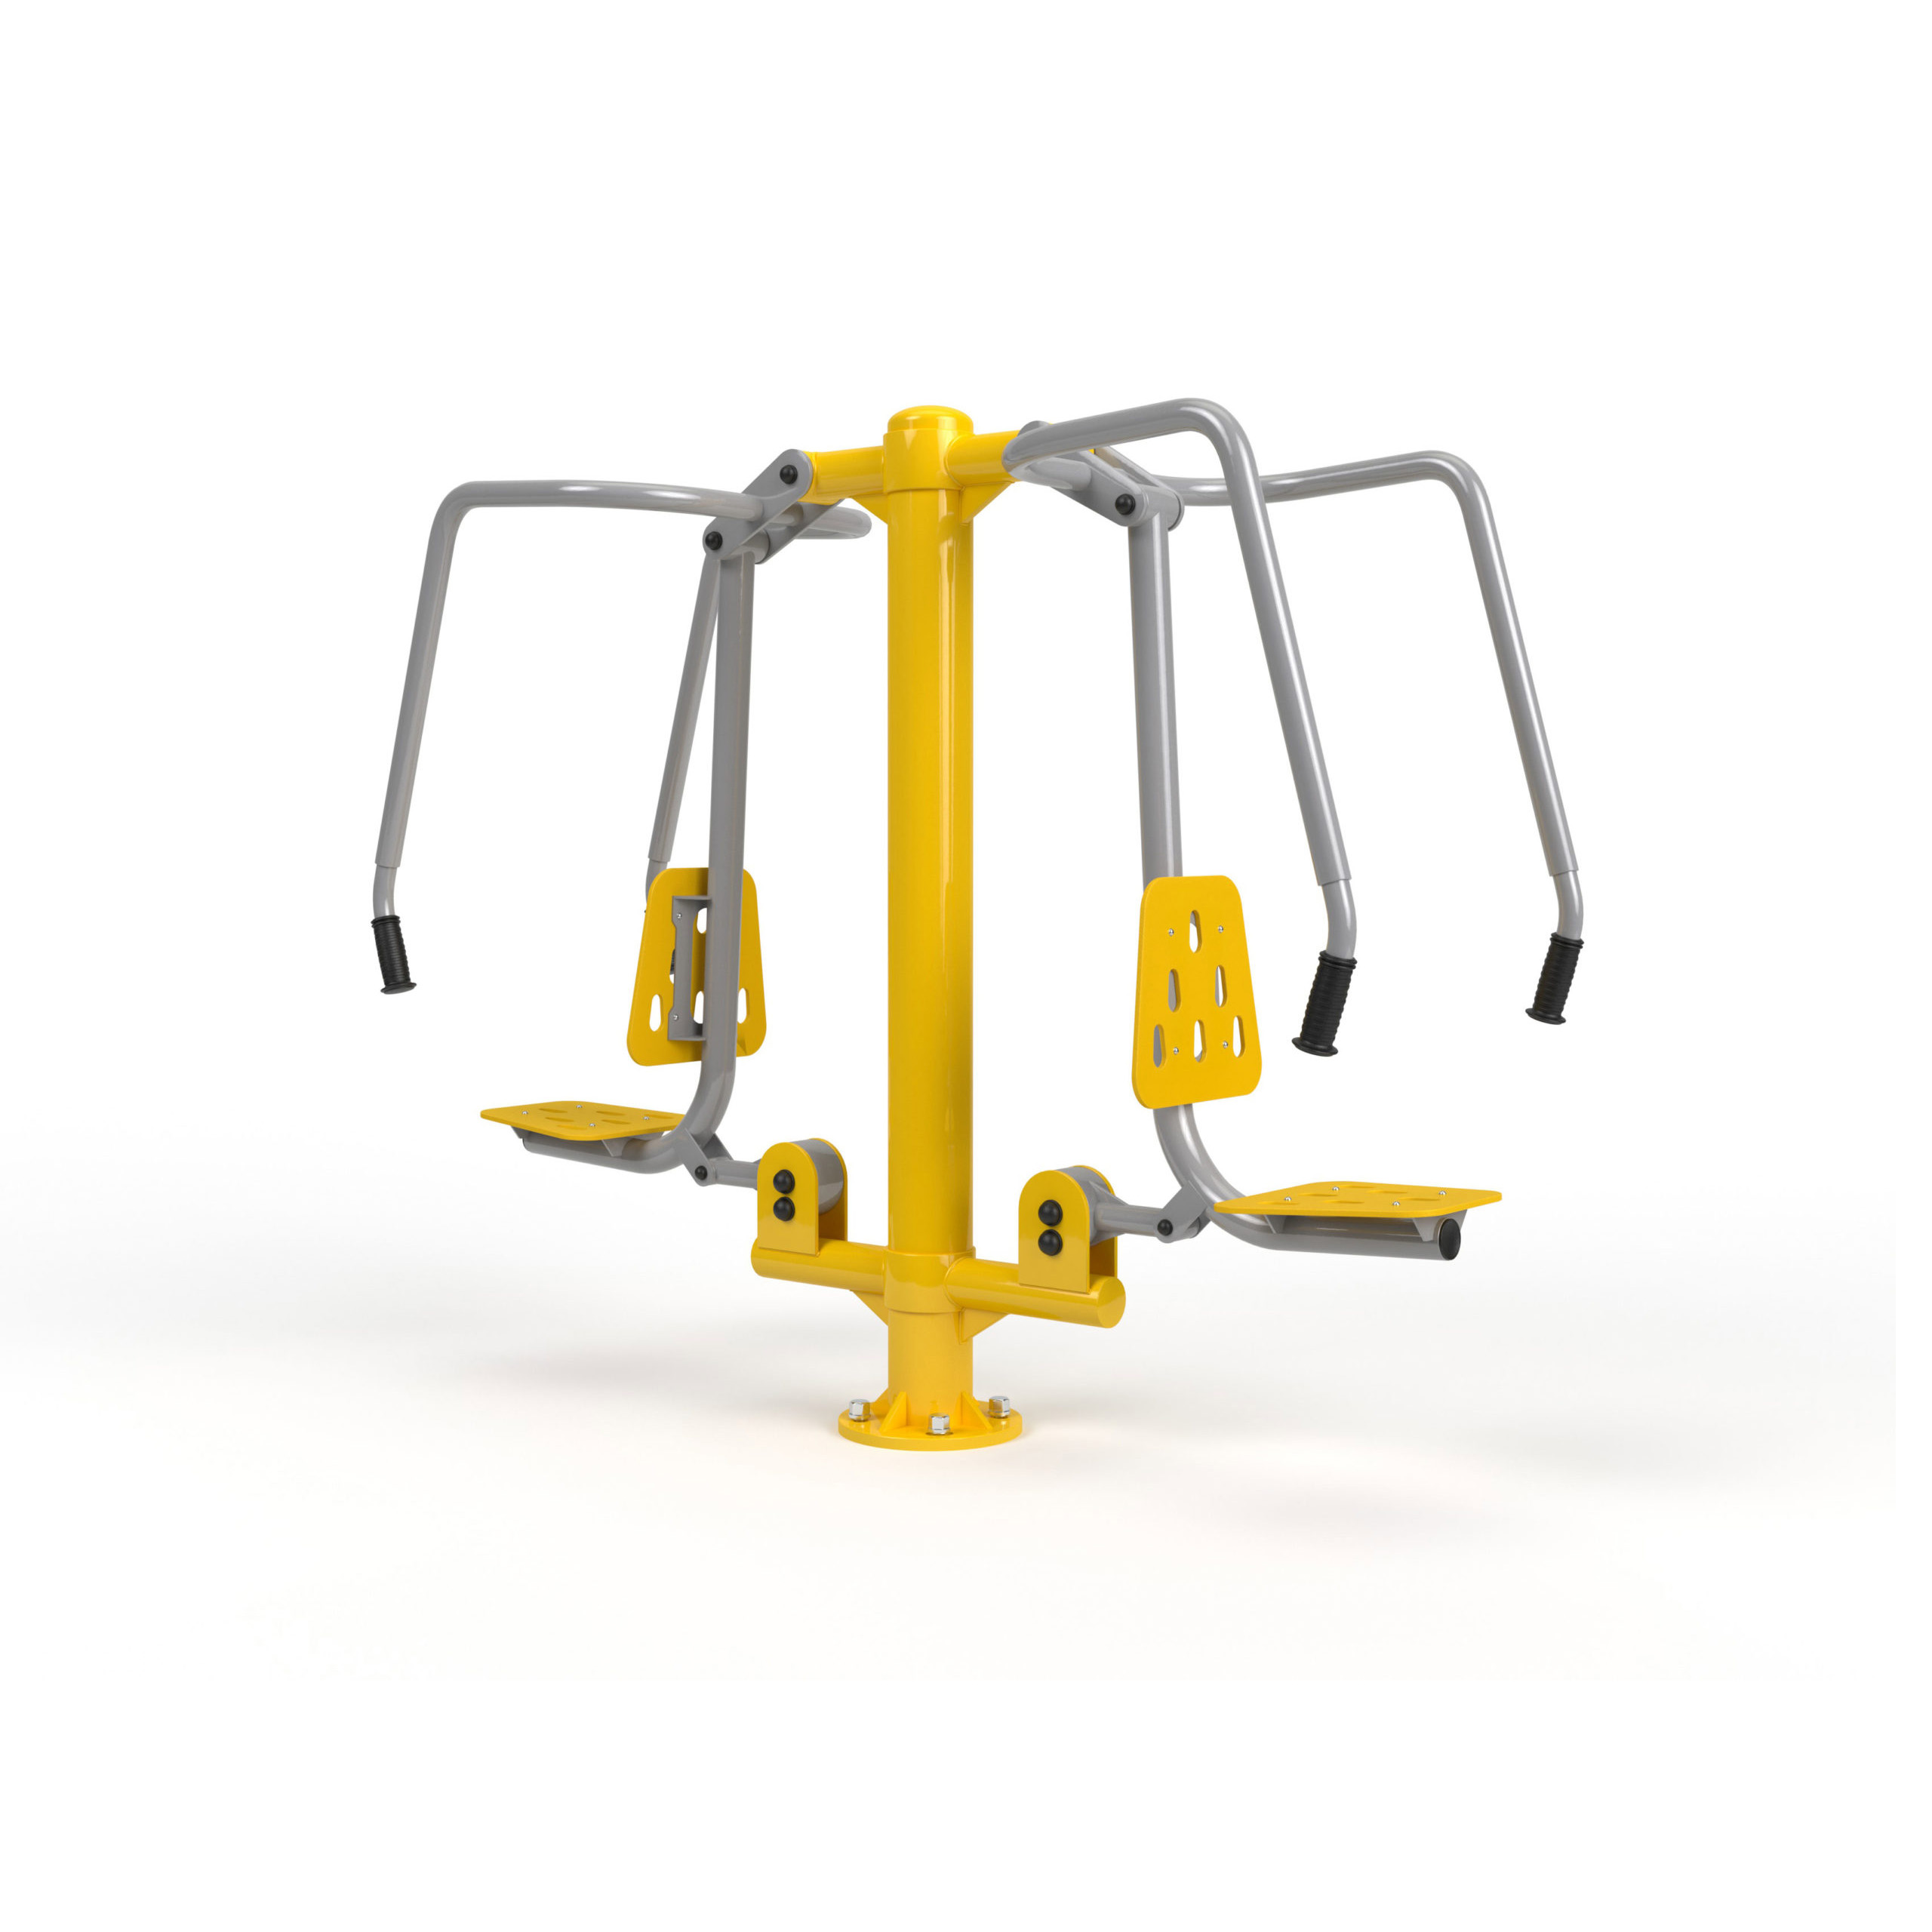 Outdoor Fitness Equipment - product visualization